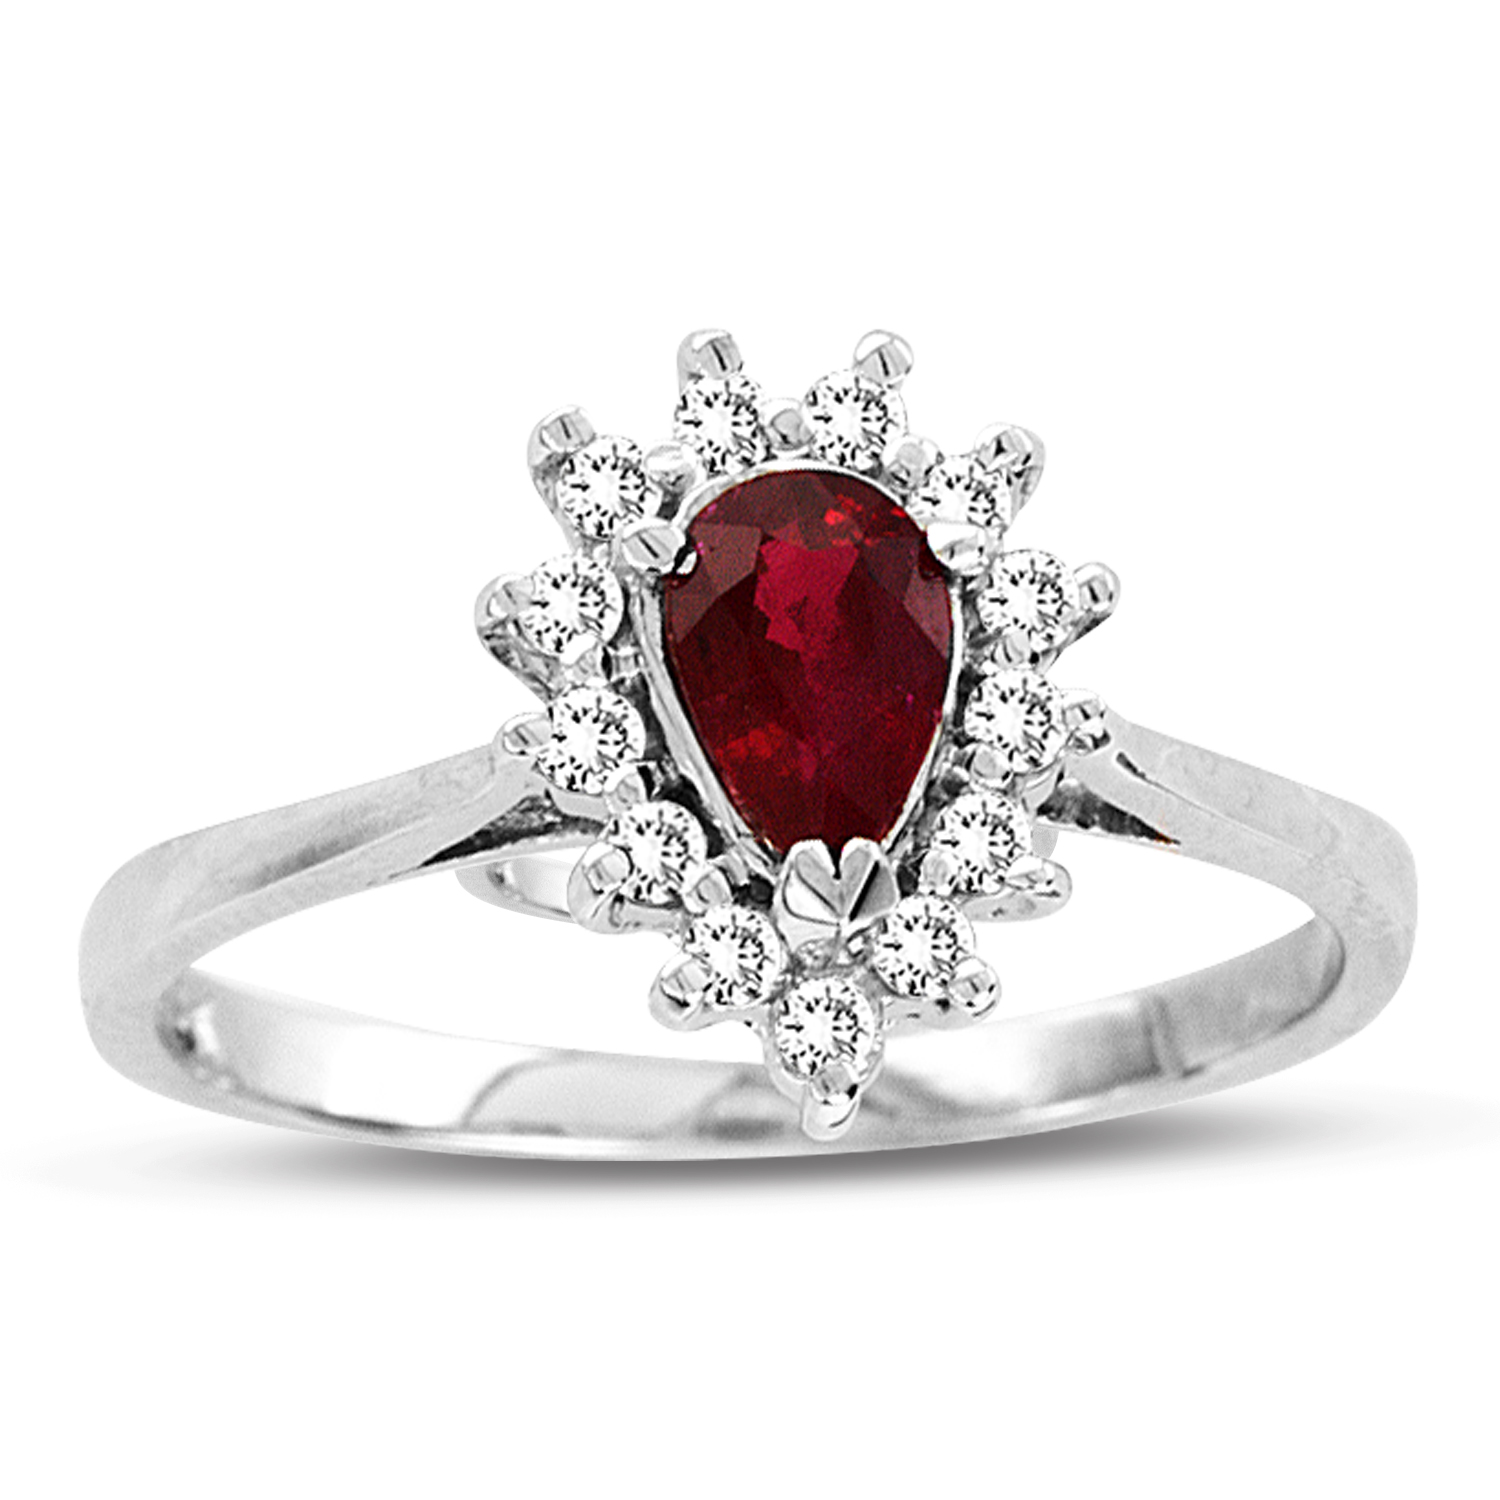 0.65ct tw Pear Shaped Natural Heated Ruby and Diamond Ring in 14k Gold